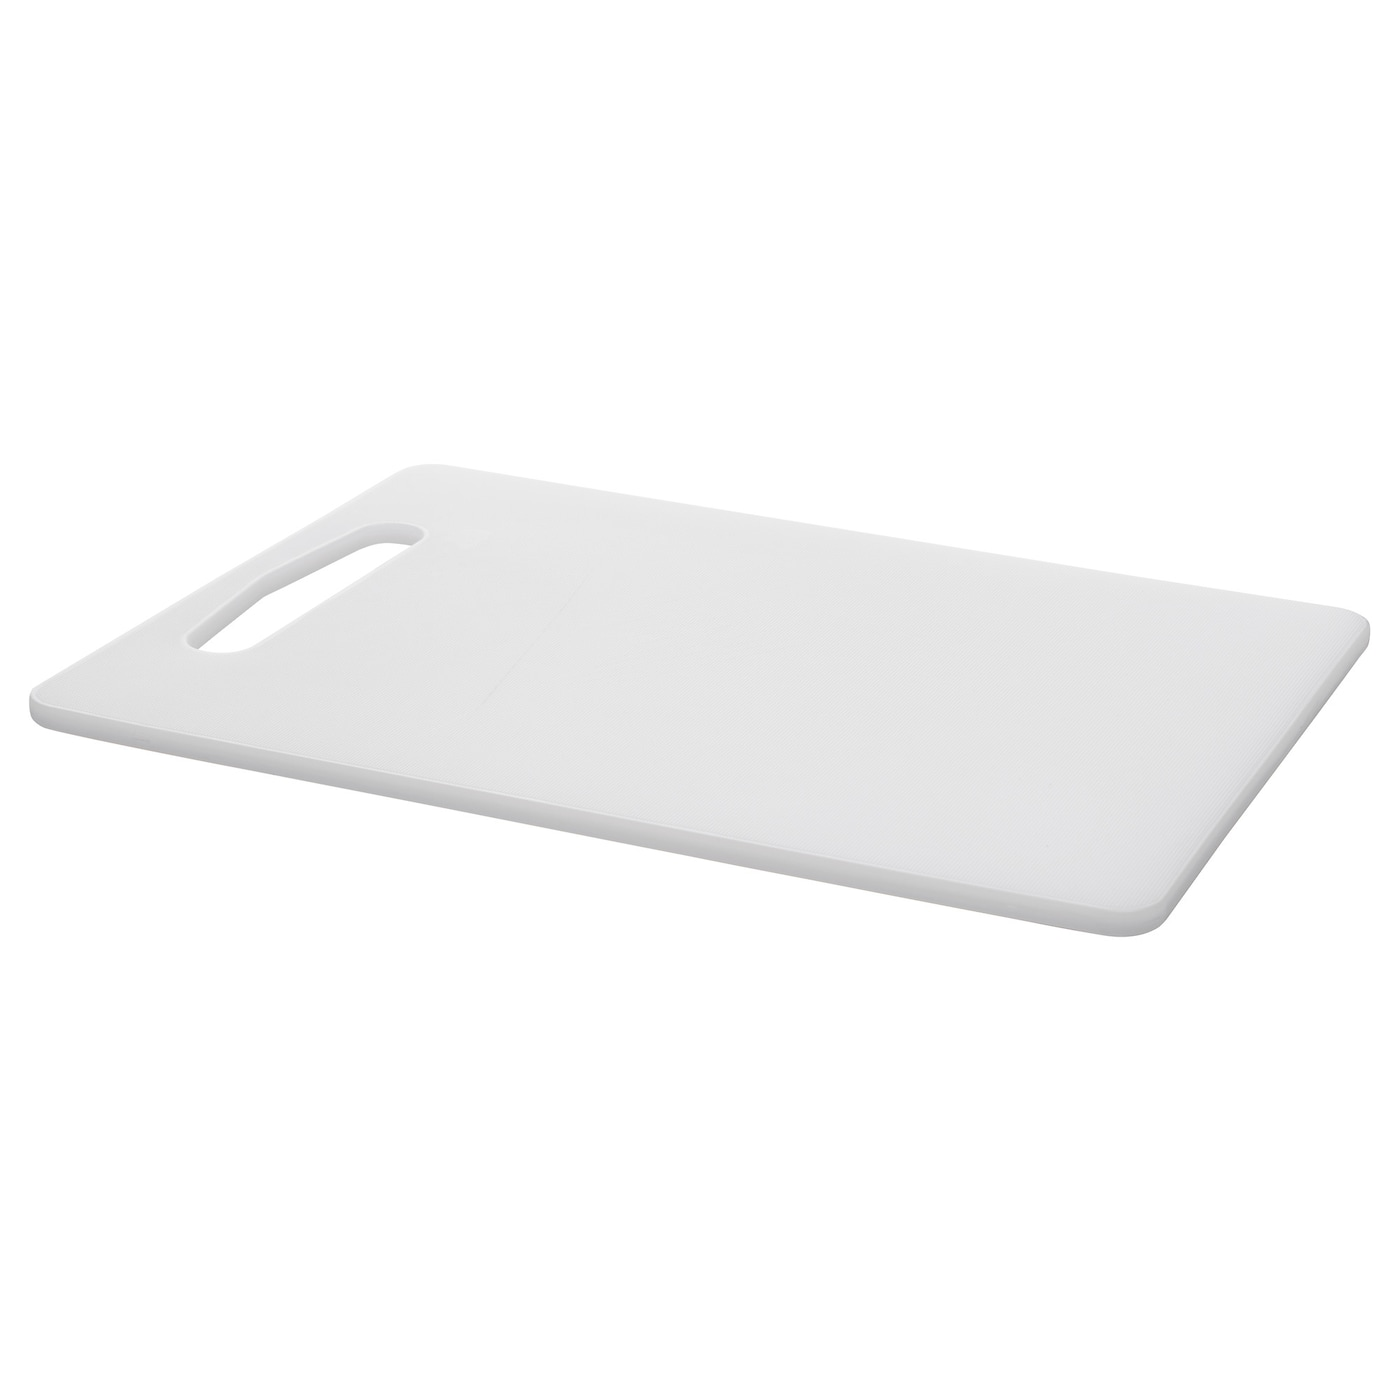 legitim chopping board white 34x24 cm ikea. Black Bedroom Furniture Sets. Home Design Ideas